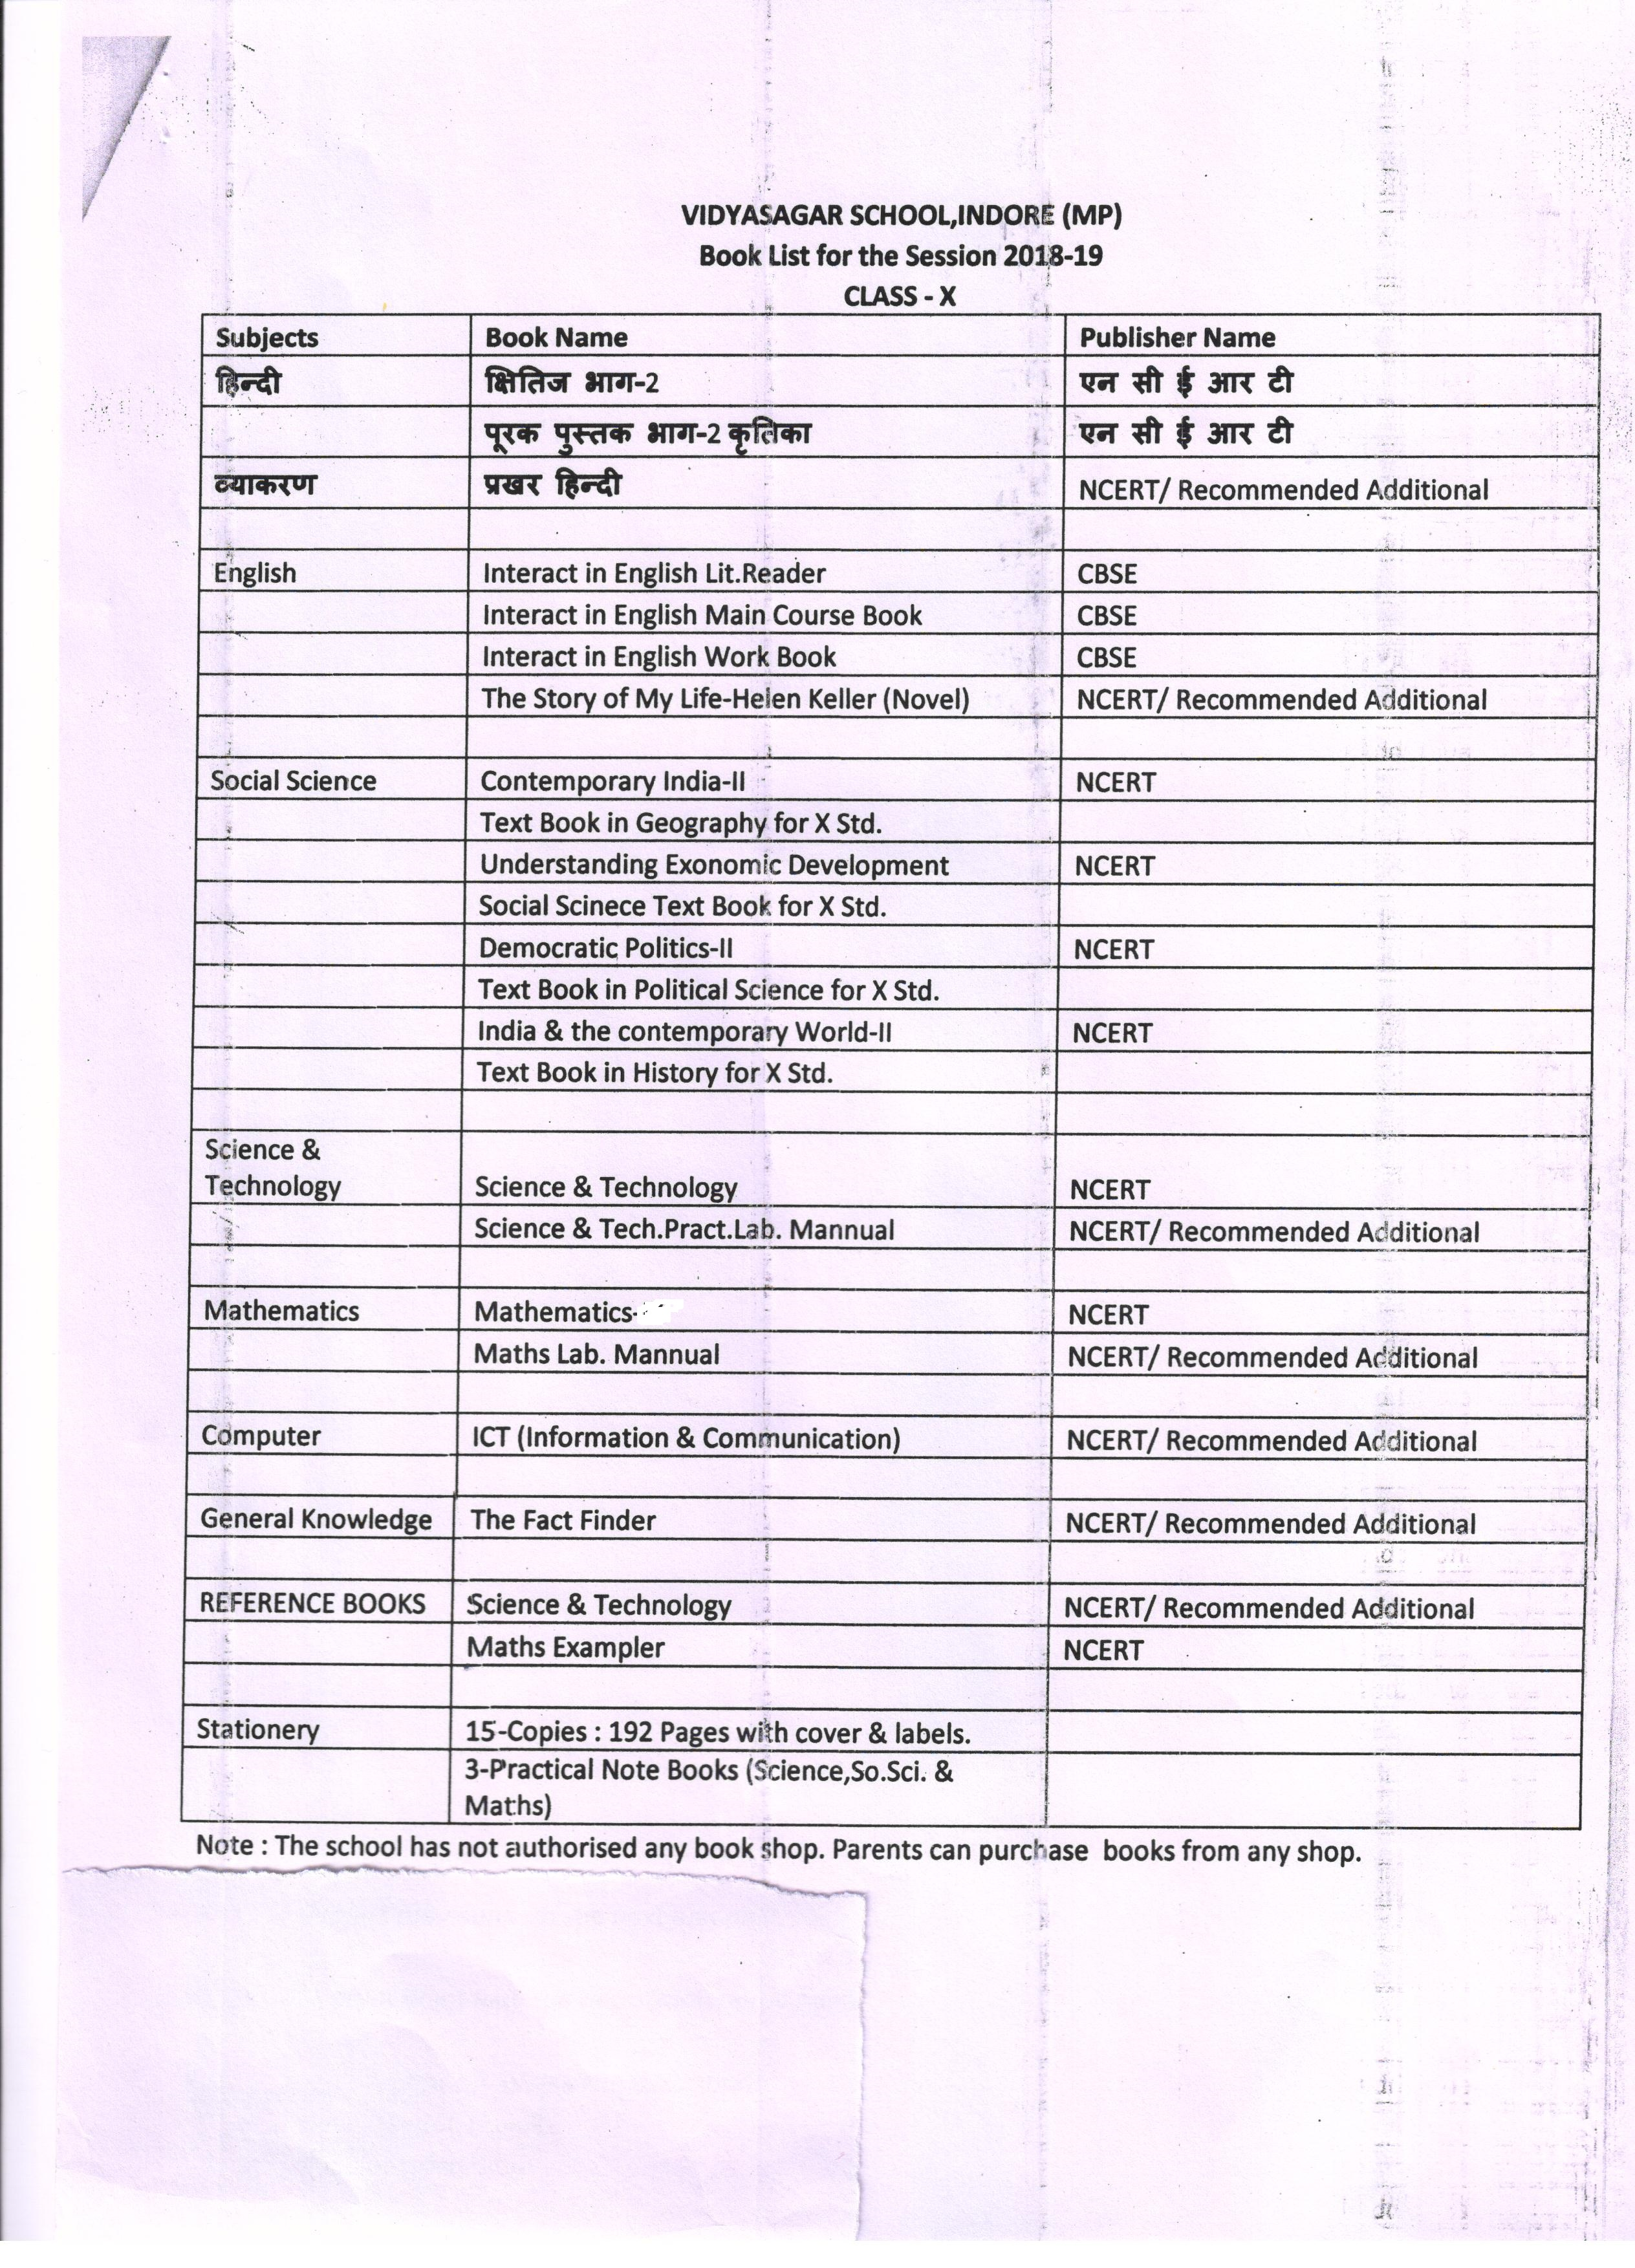 Book List for the Classes Nur  to XII Session-2018-19 | vidyasagar